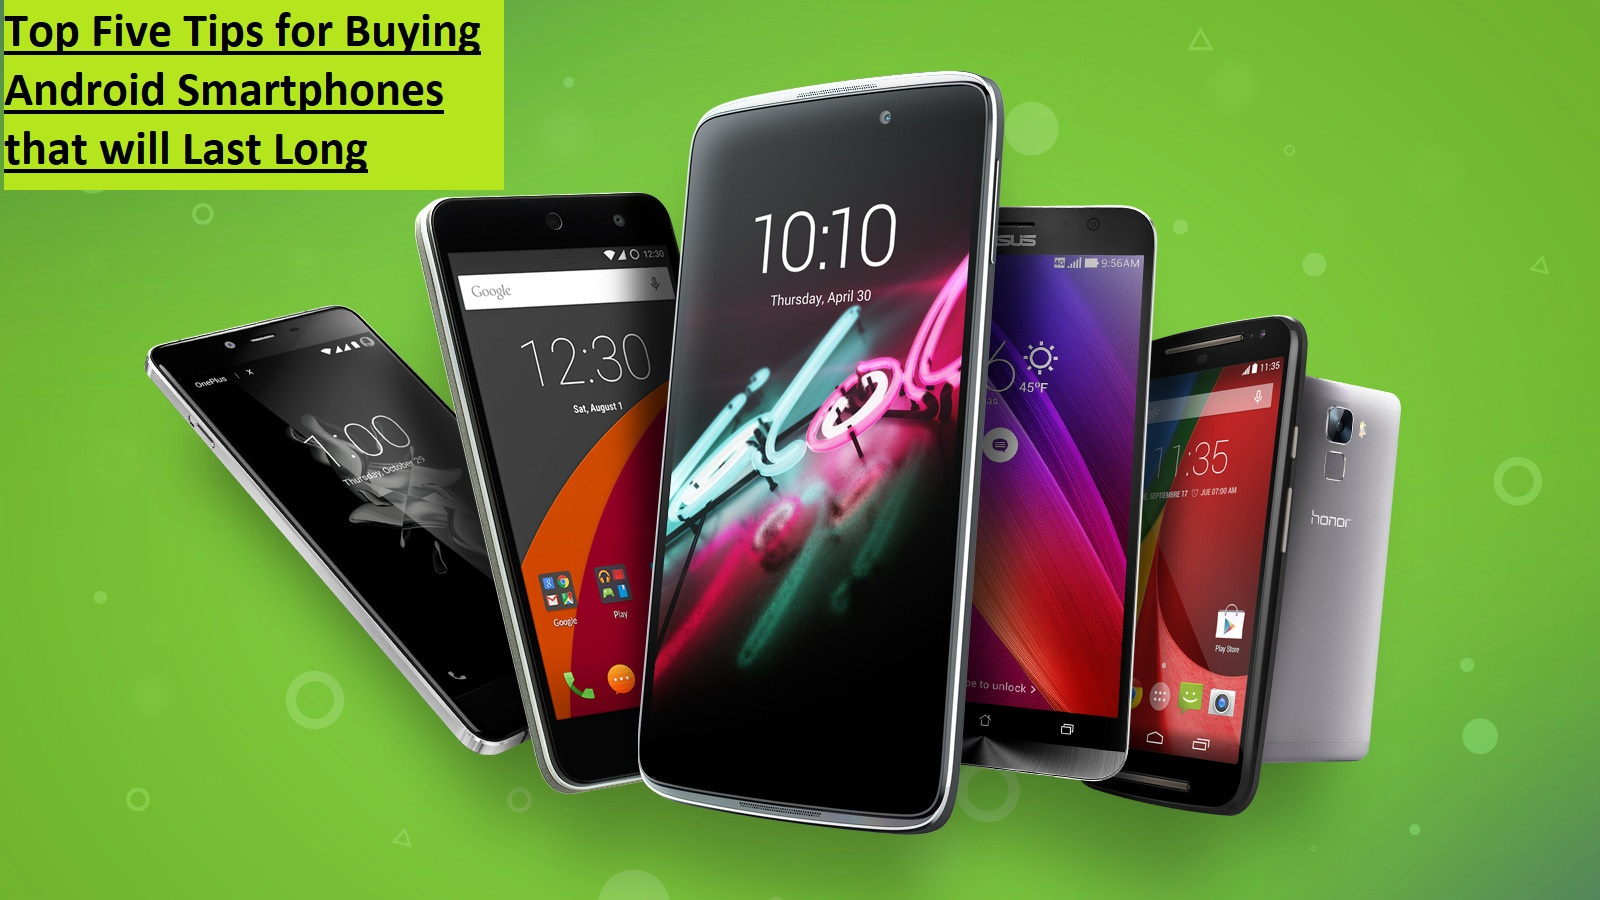 Top Five Tips for Buying Android Smartphones that will Last Long